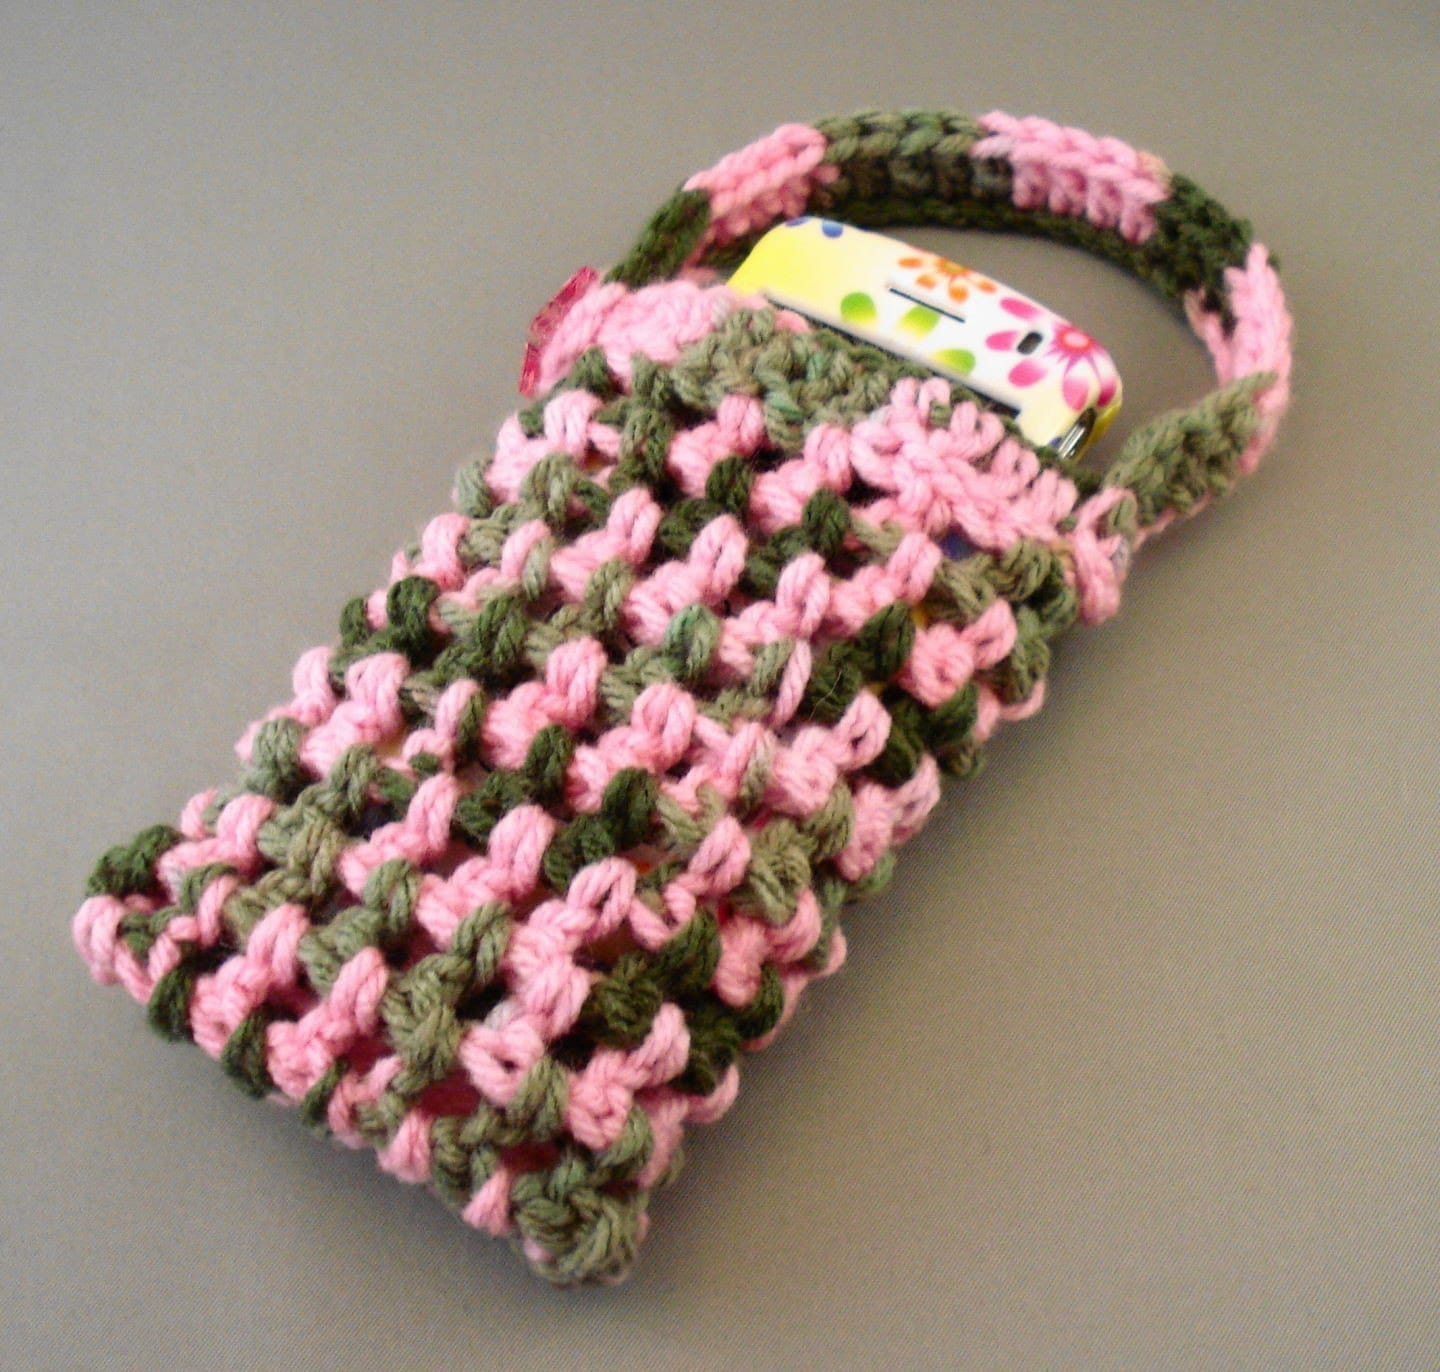 Pink and Green Camo Tag Along Phone/Ipod Cozy